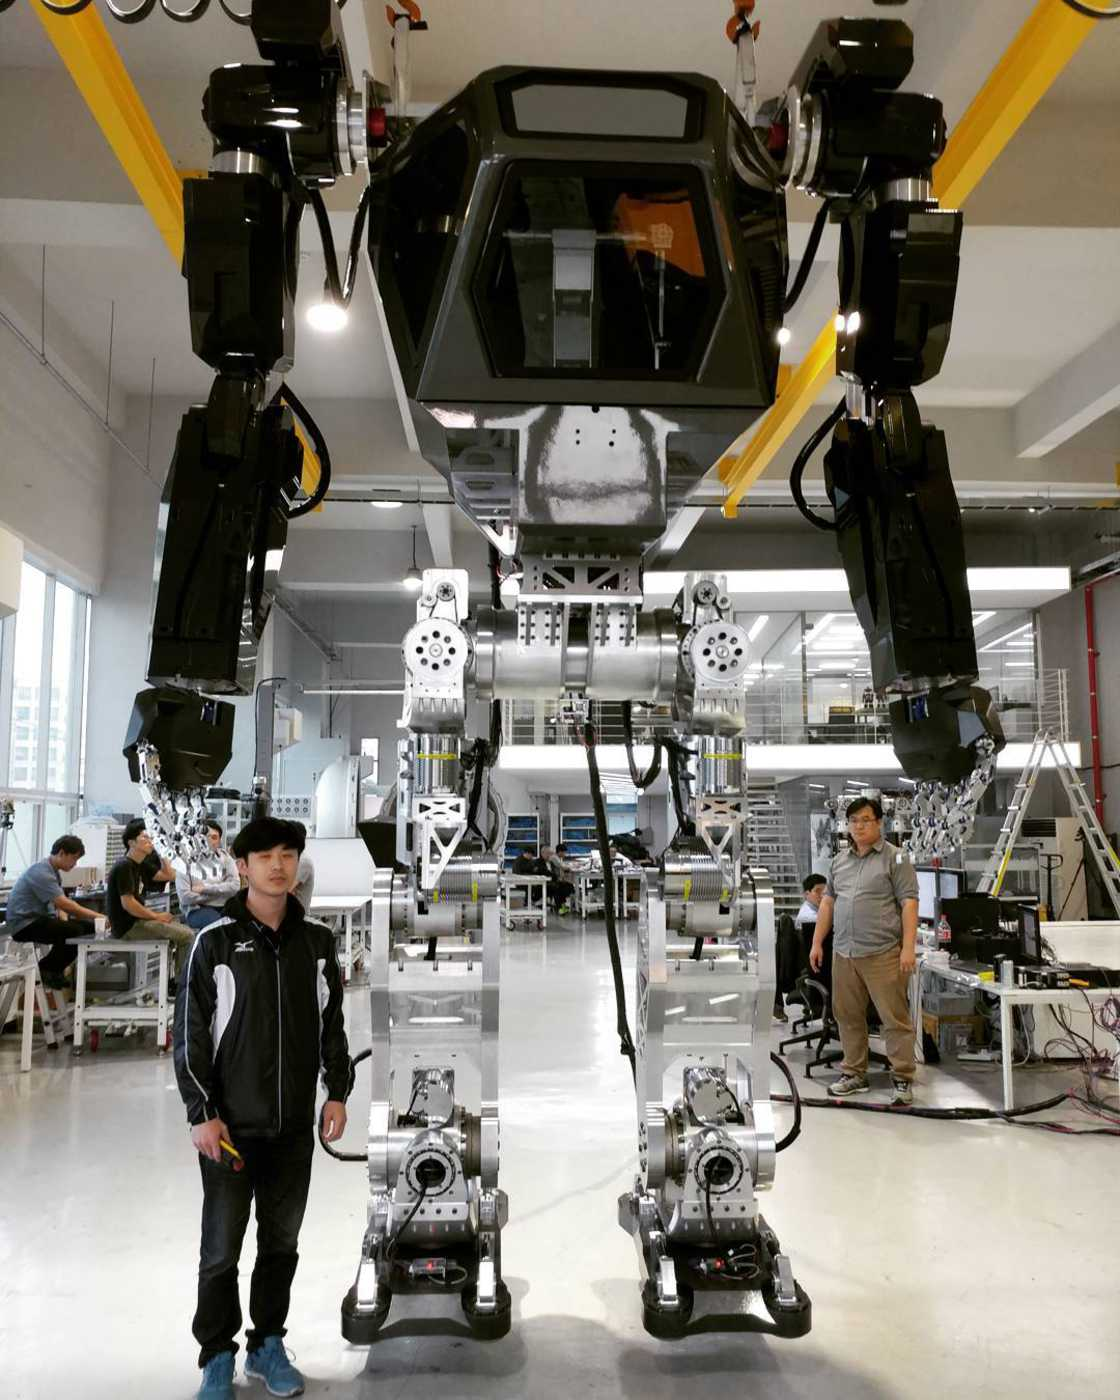 METHOD-1 - The Korean manned robot that is straight out of Avatar